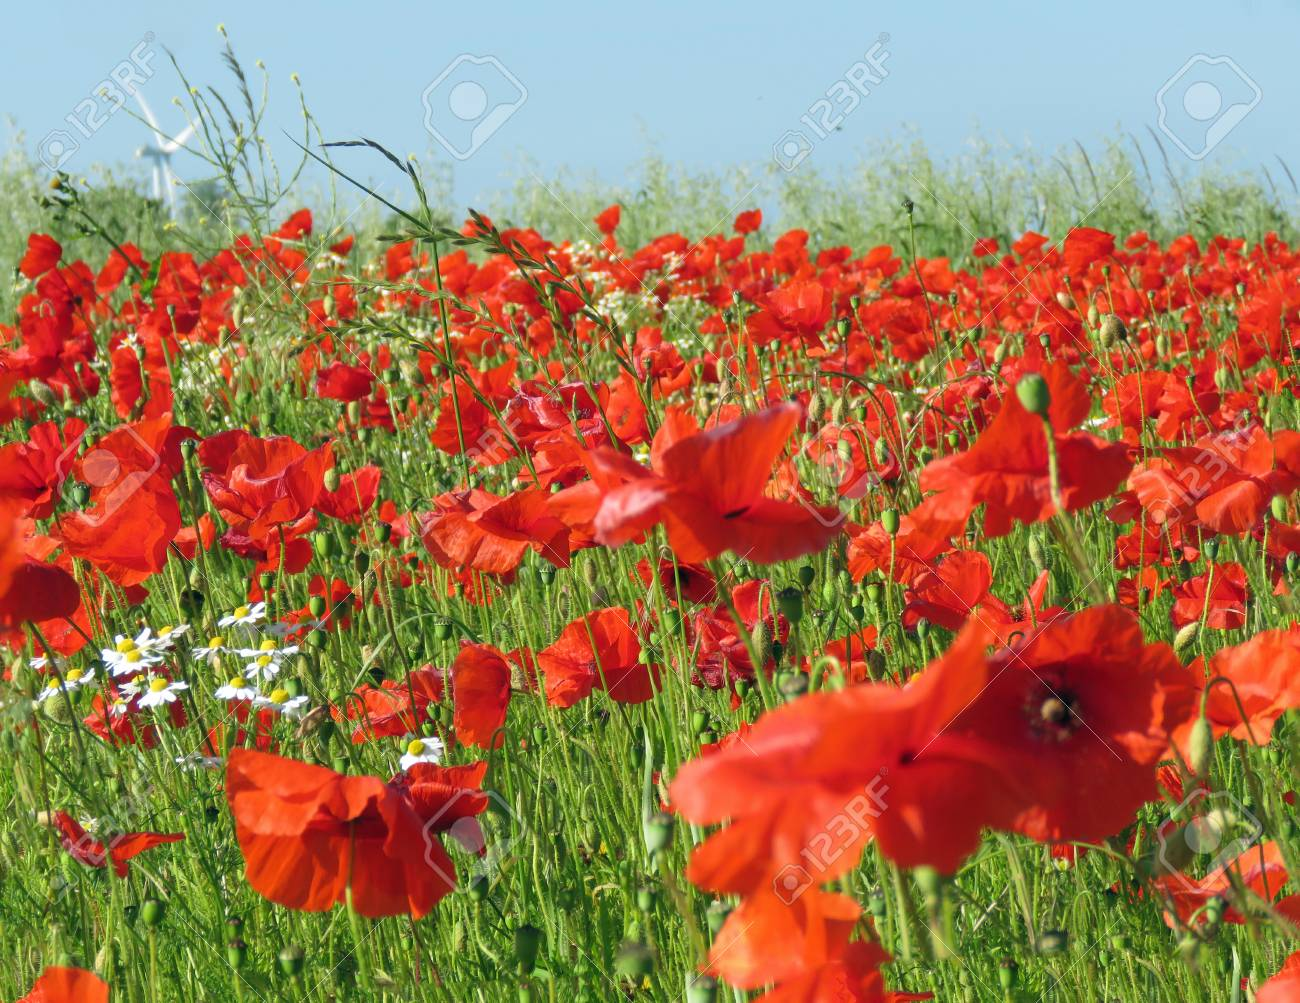 A meadow full of poppies and grasses in rural English countryside Standard-Bild - 81912968